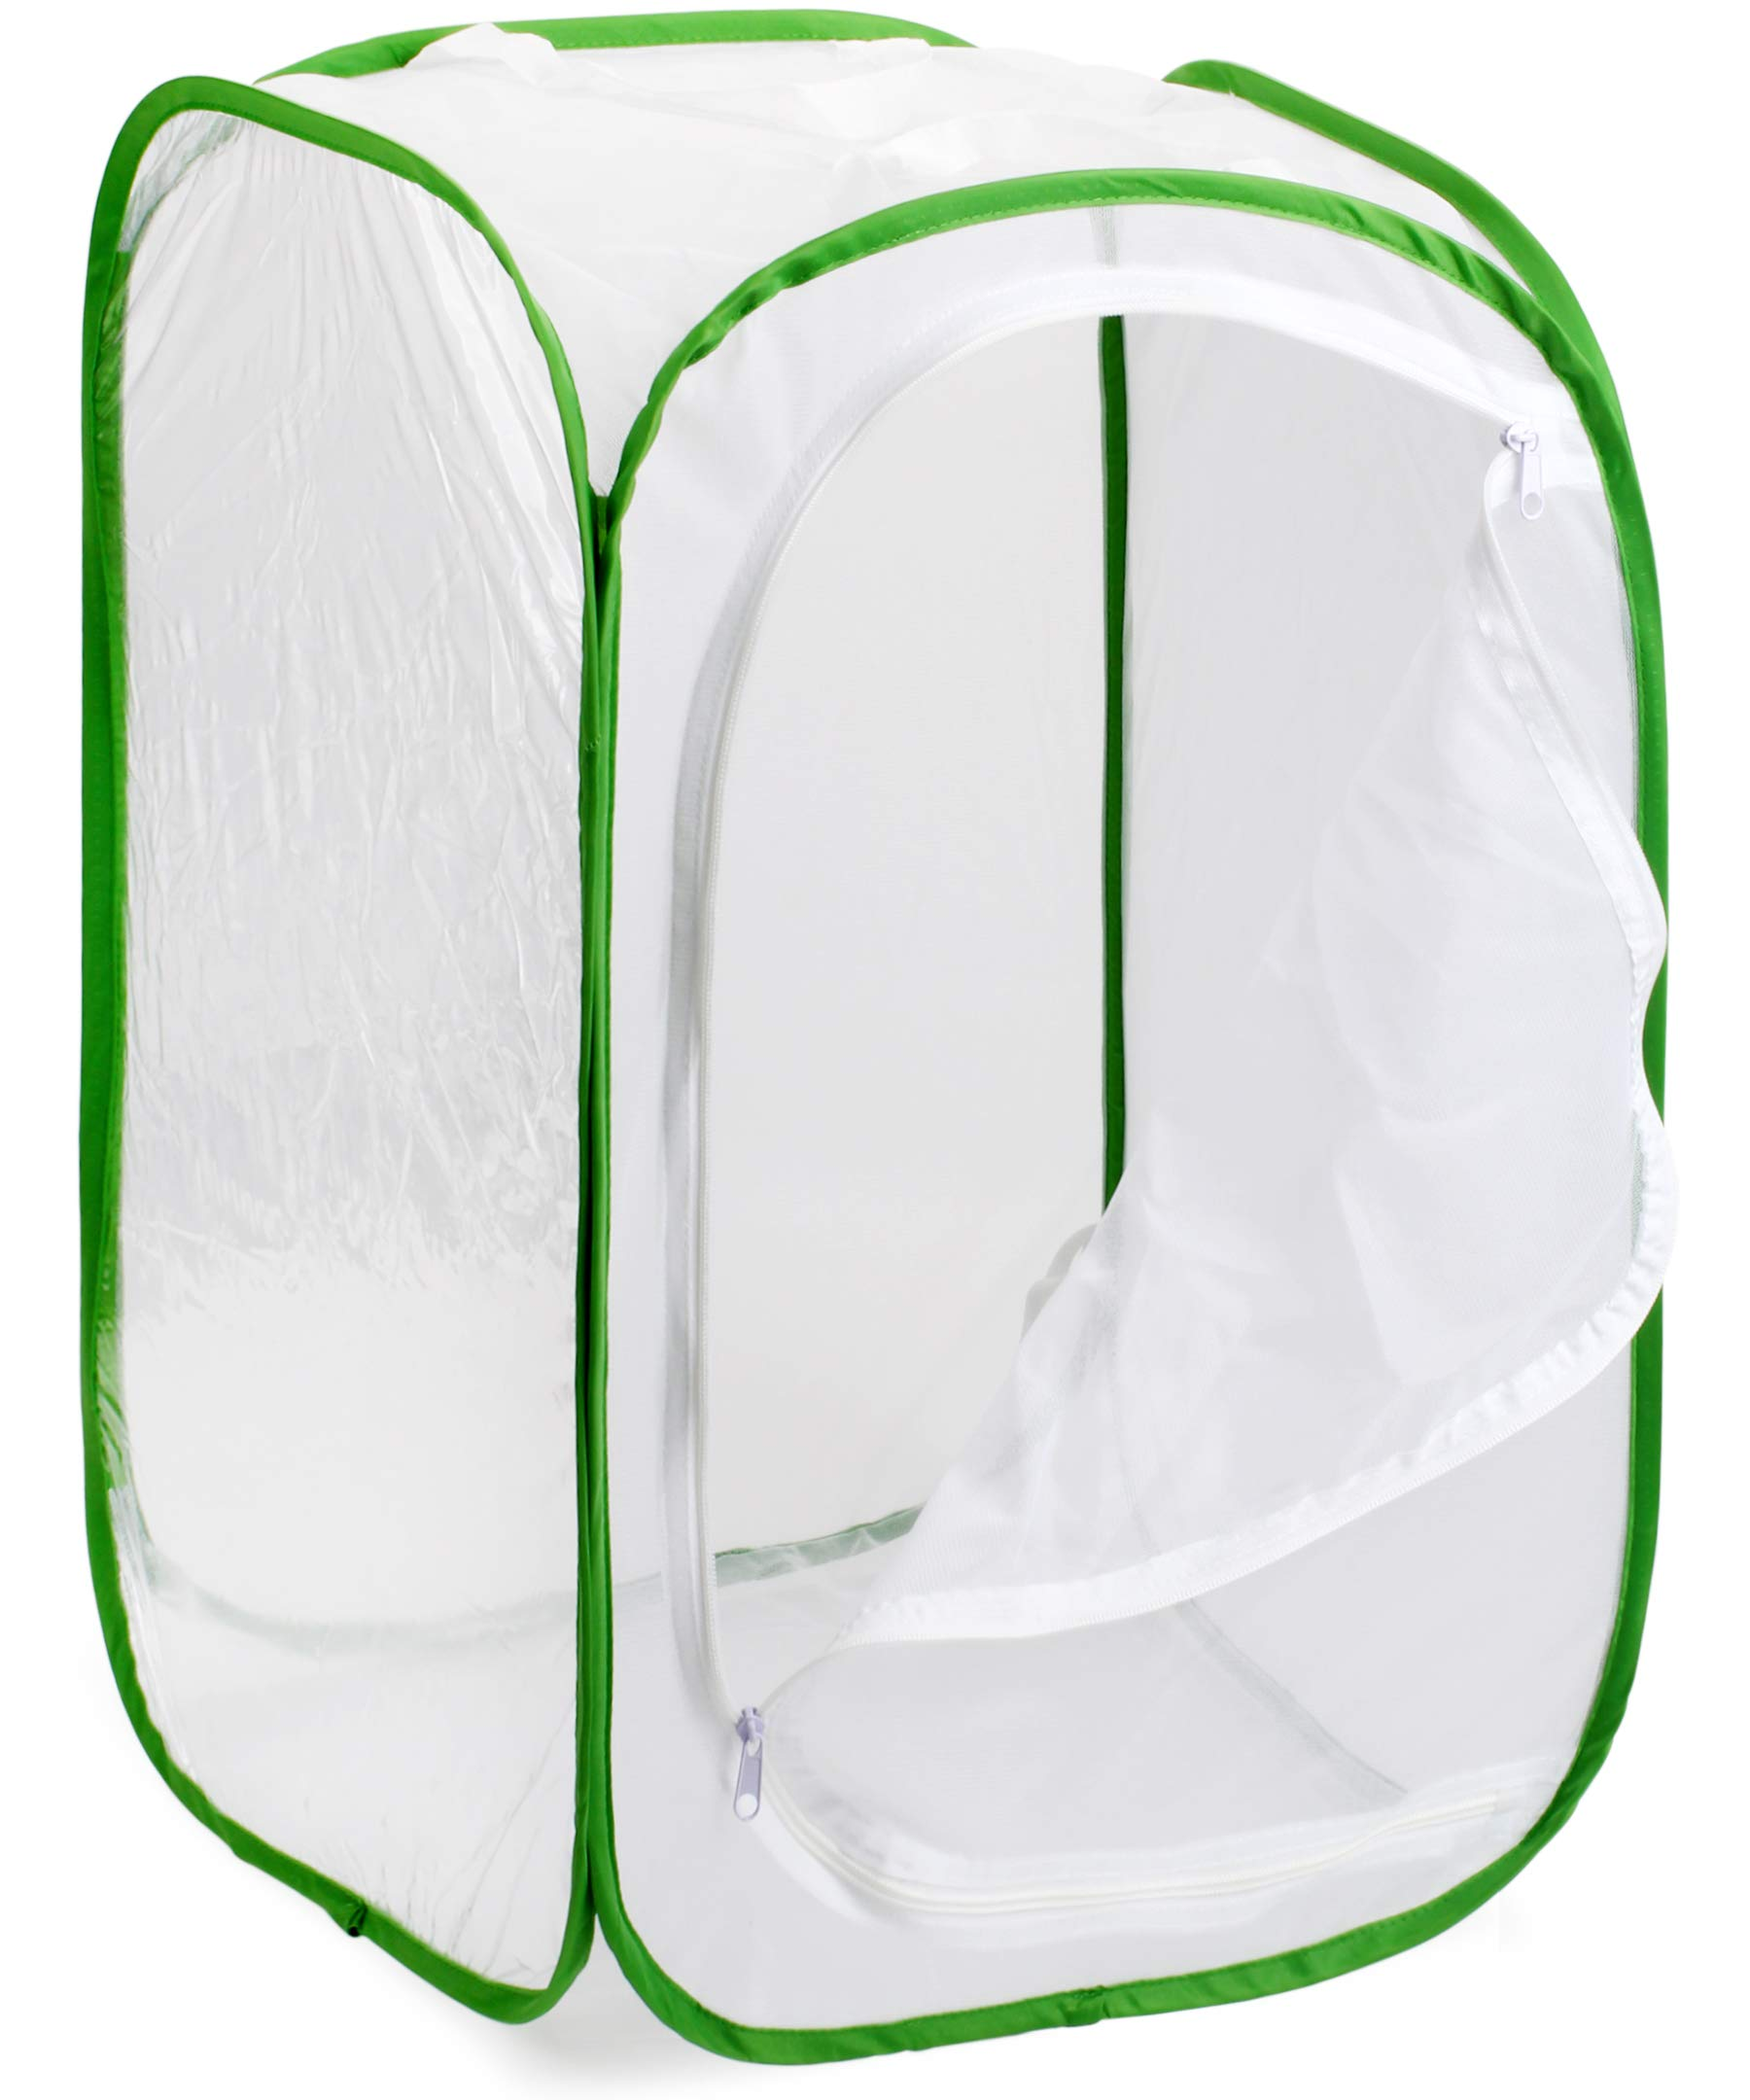 Muchfun Monarch Butterfly Habitat Cage Pop Up 16 x 16 x 24 Inches